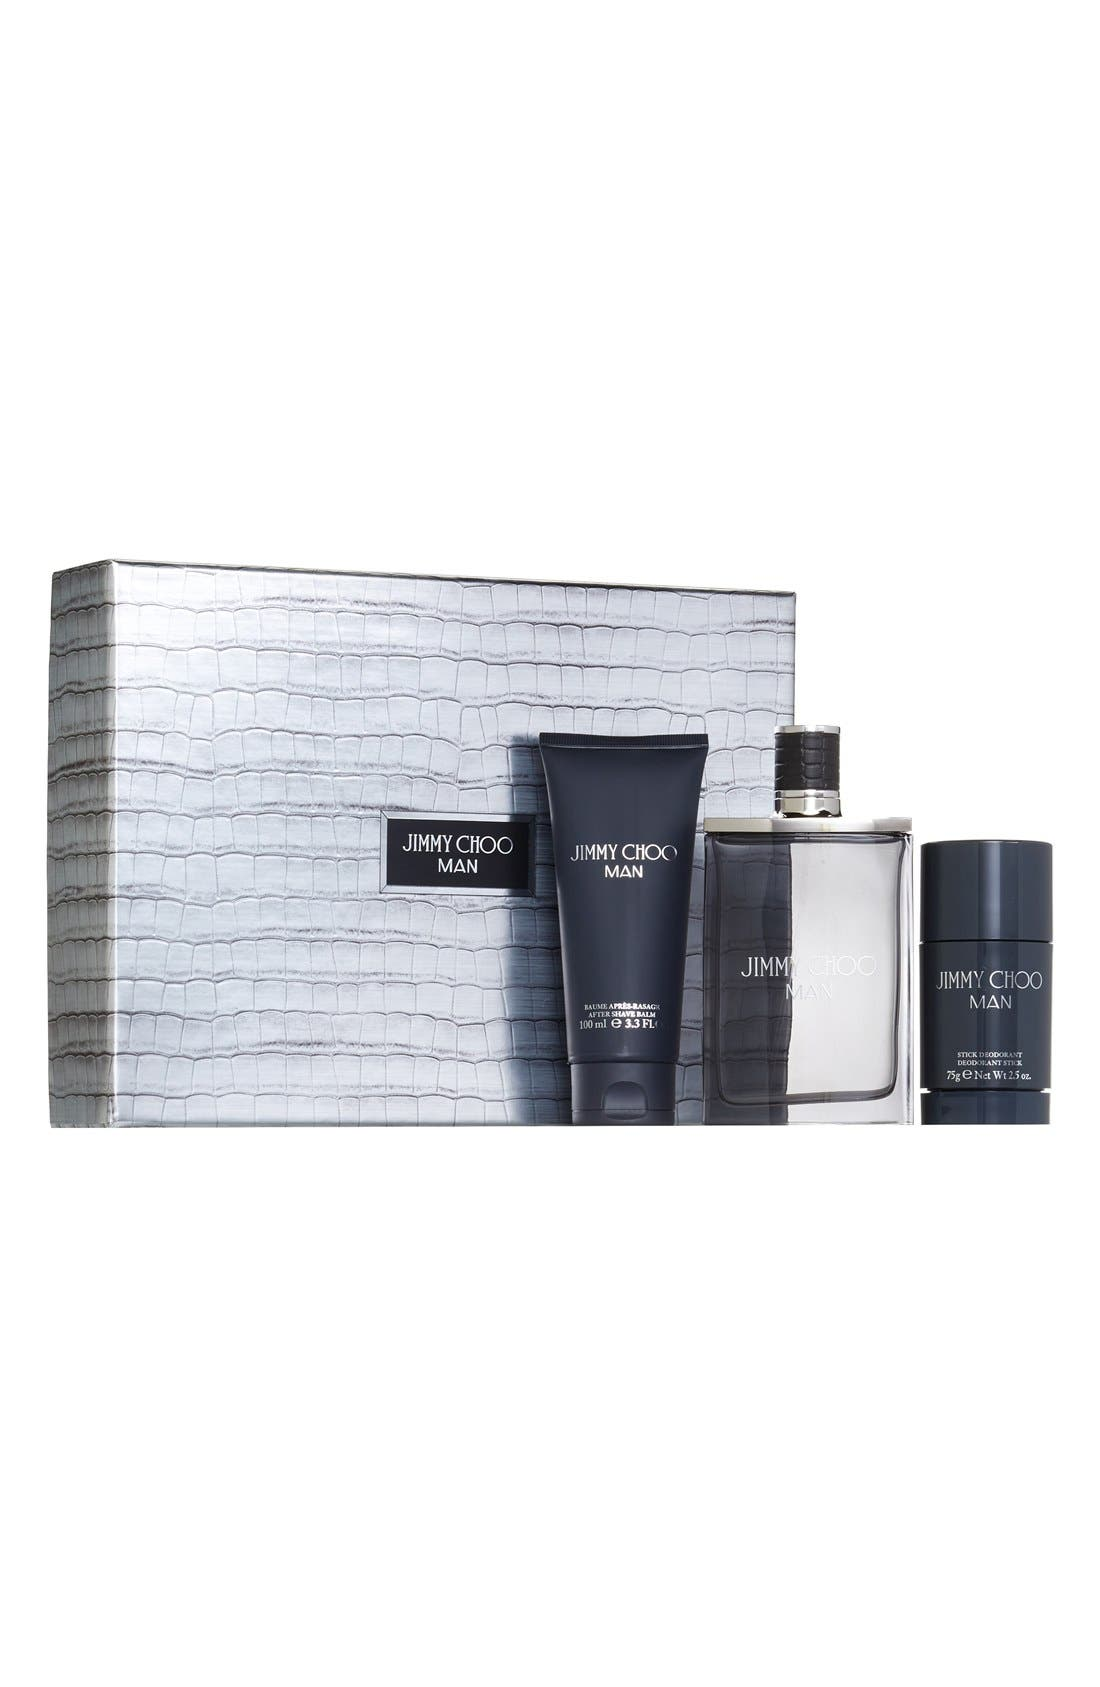 Jimmy Choo MAN Set ($165 Value)